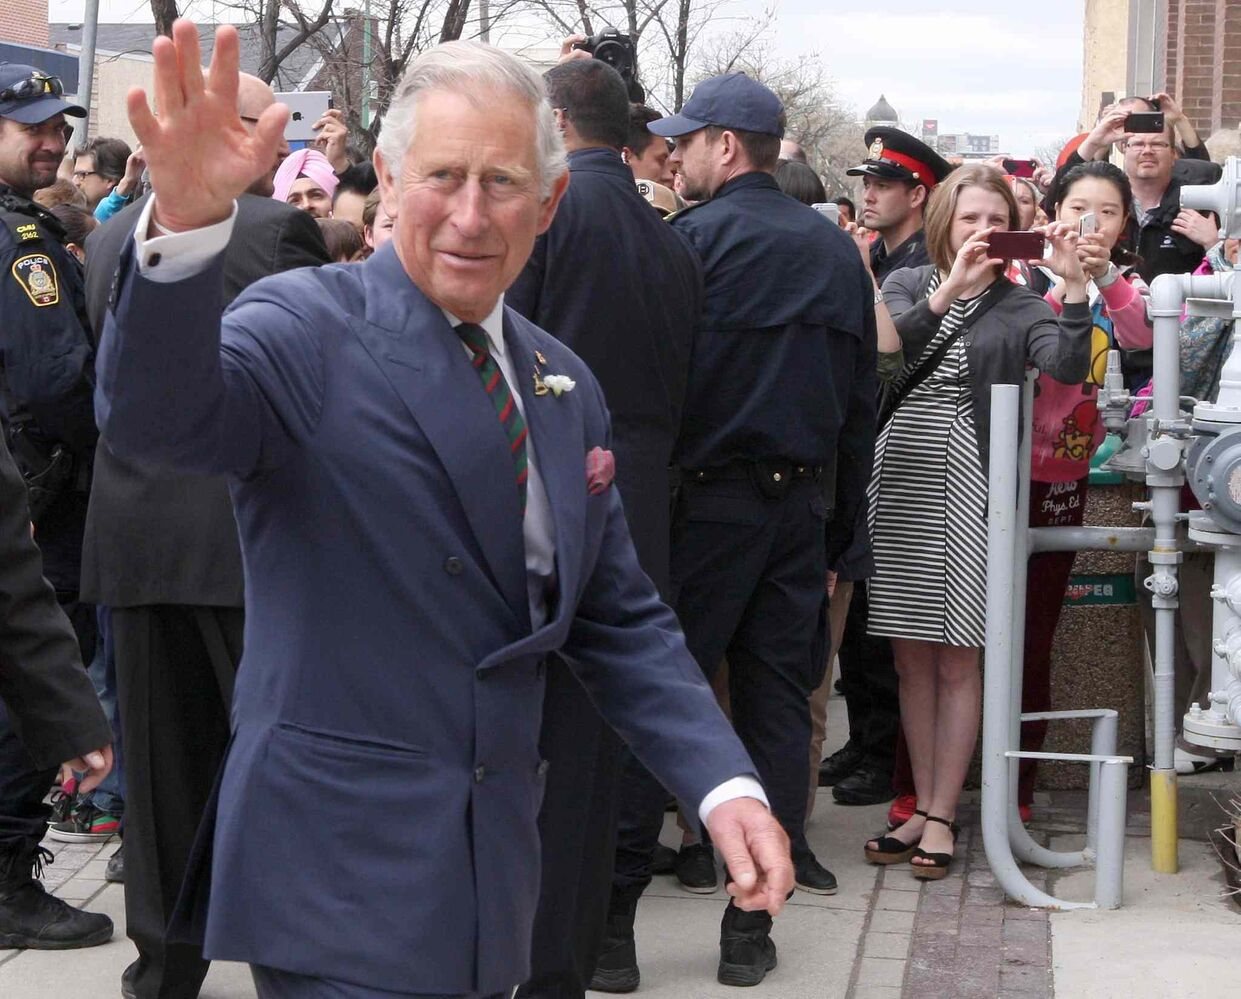 His Royal Highness Prince Charles attends Red River College downtown campus Wednesday afternoon in Winnipeg.  (JOE BRYKSA / WINNIPEG FREE PRESS)